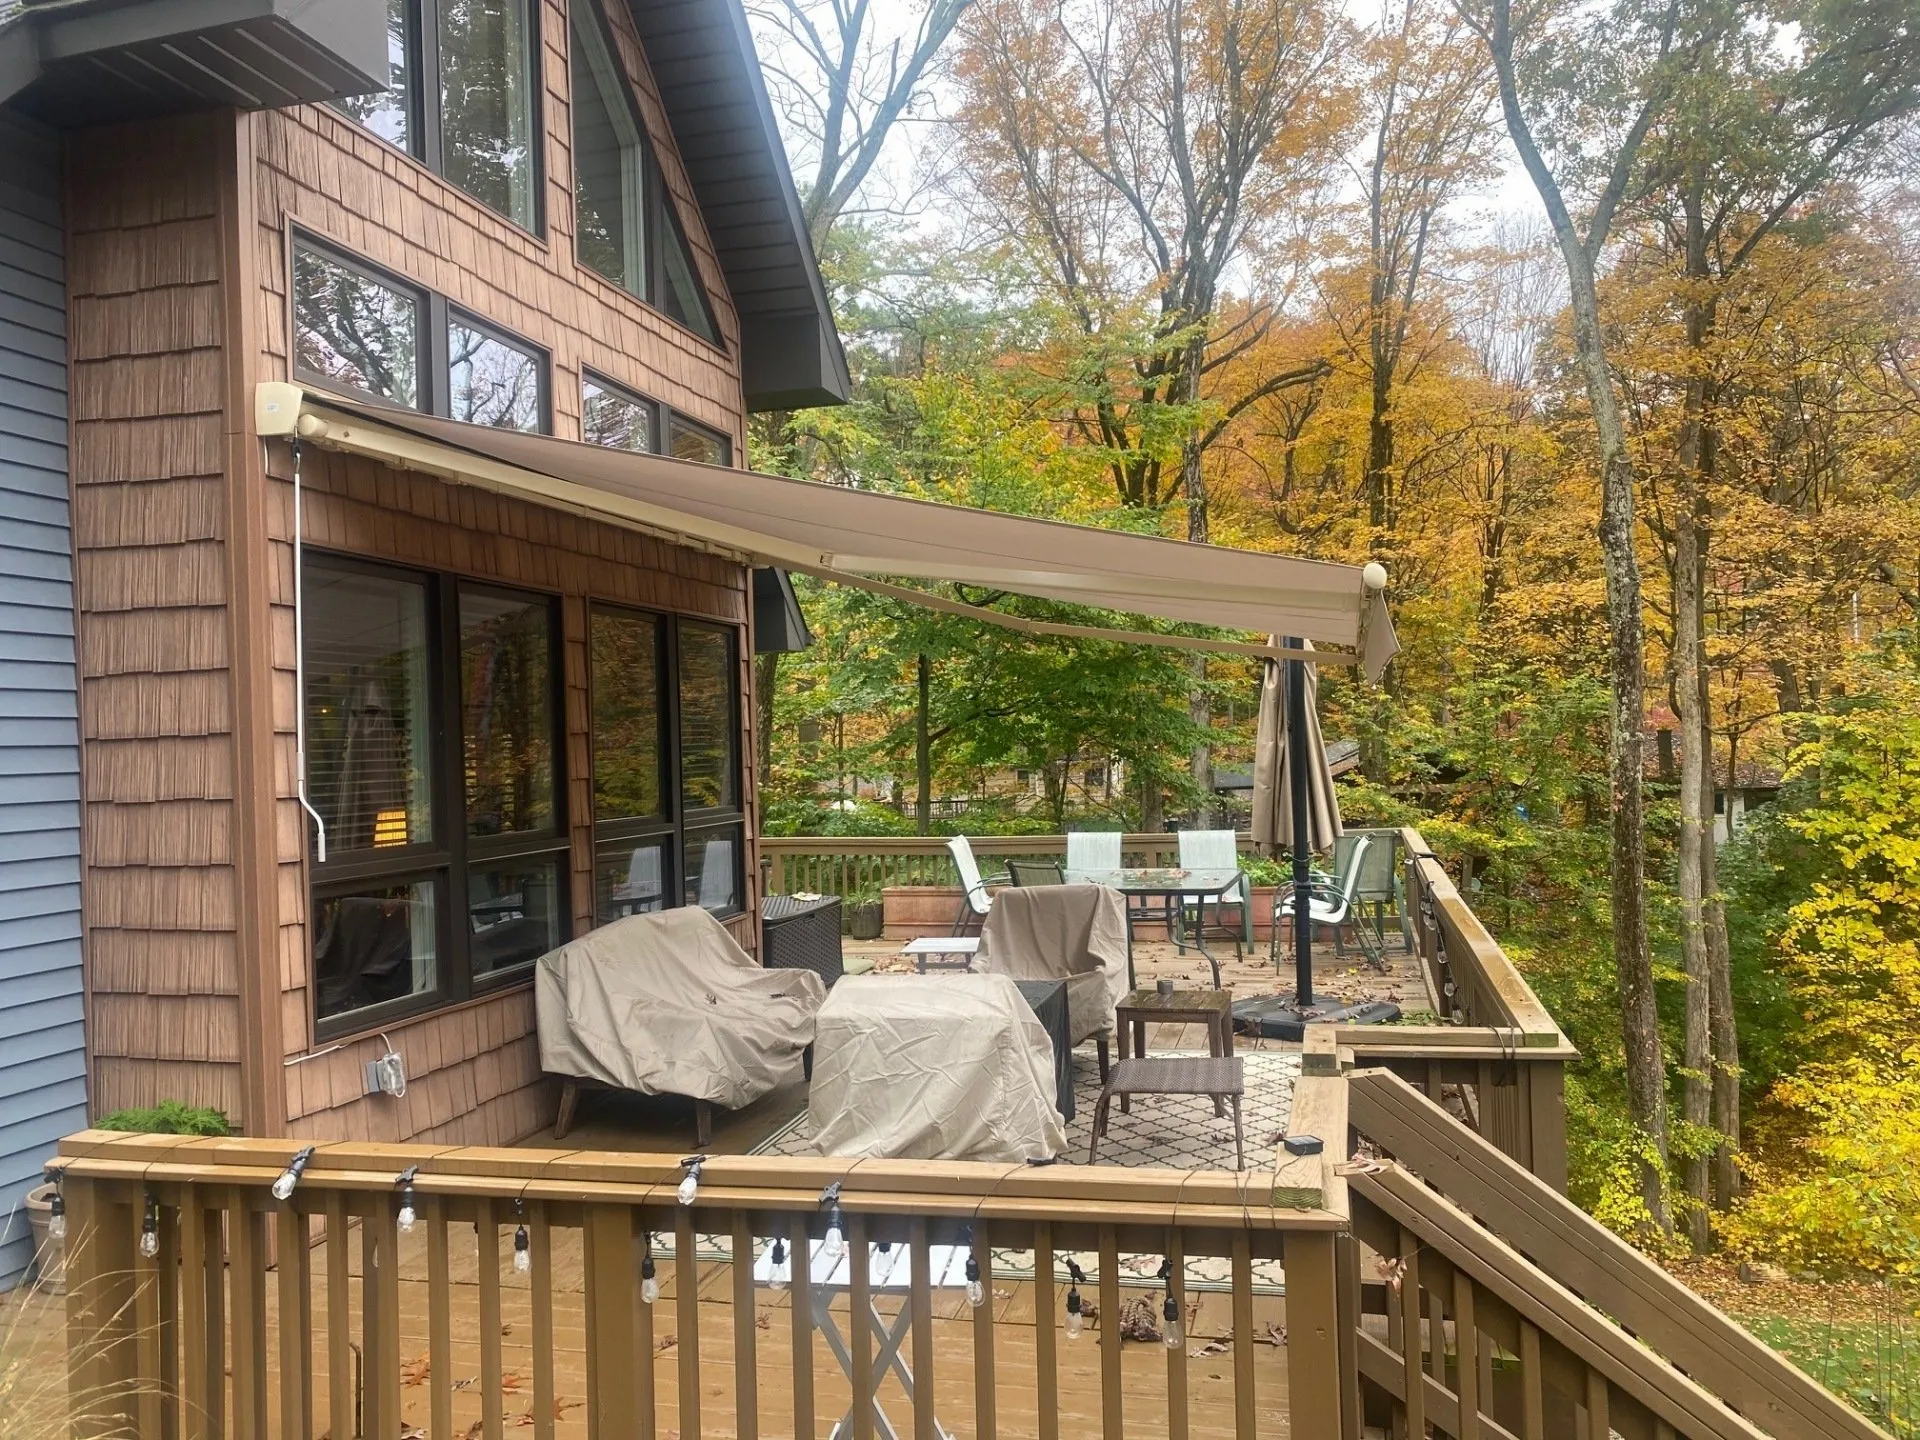 Retractable Awning For Deck or Patio | Merrick NY